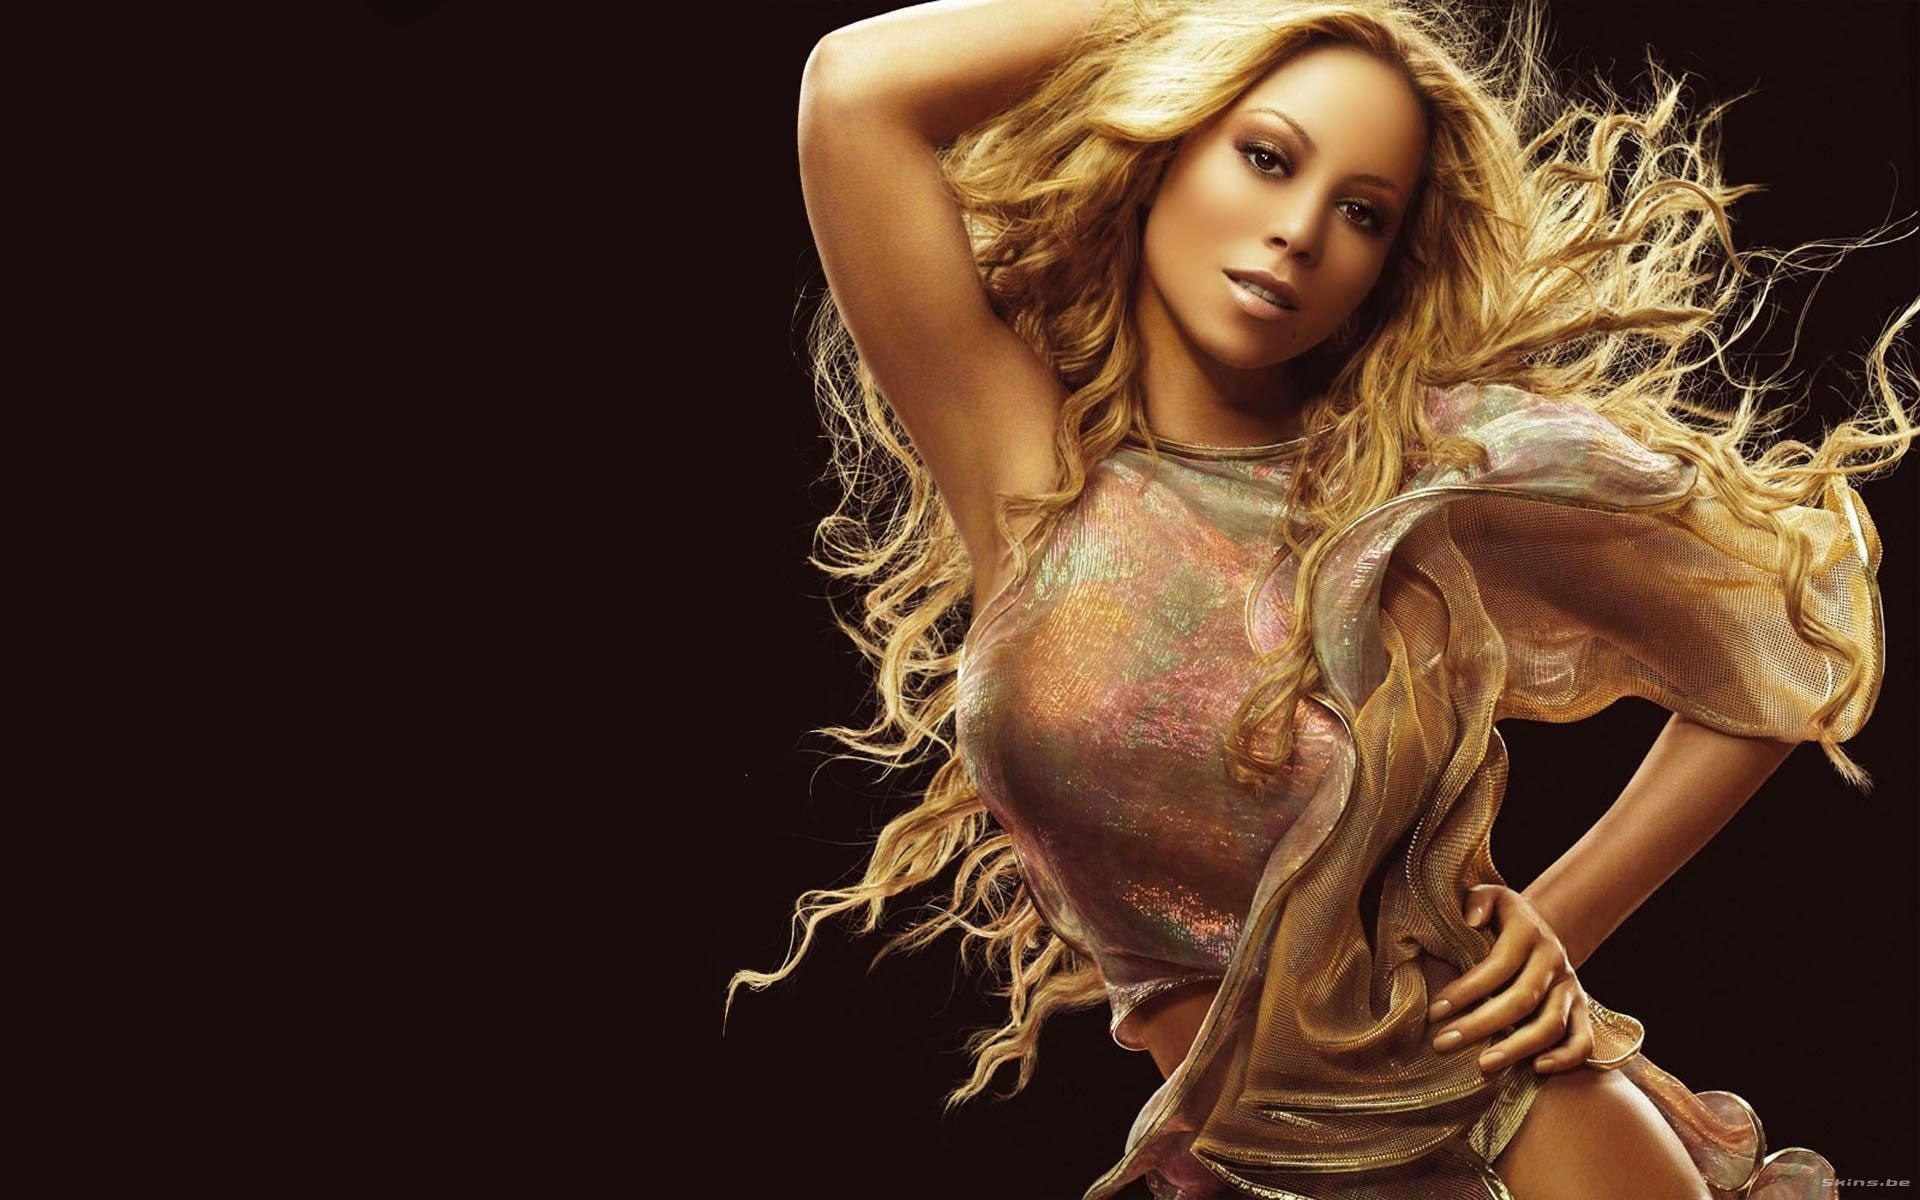 Free Computer Wallpaper For Mariah Carey Mariah Carey Mariah The Emancipation Of Mimi